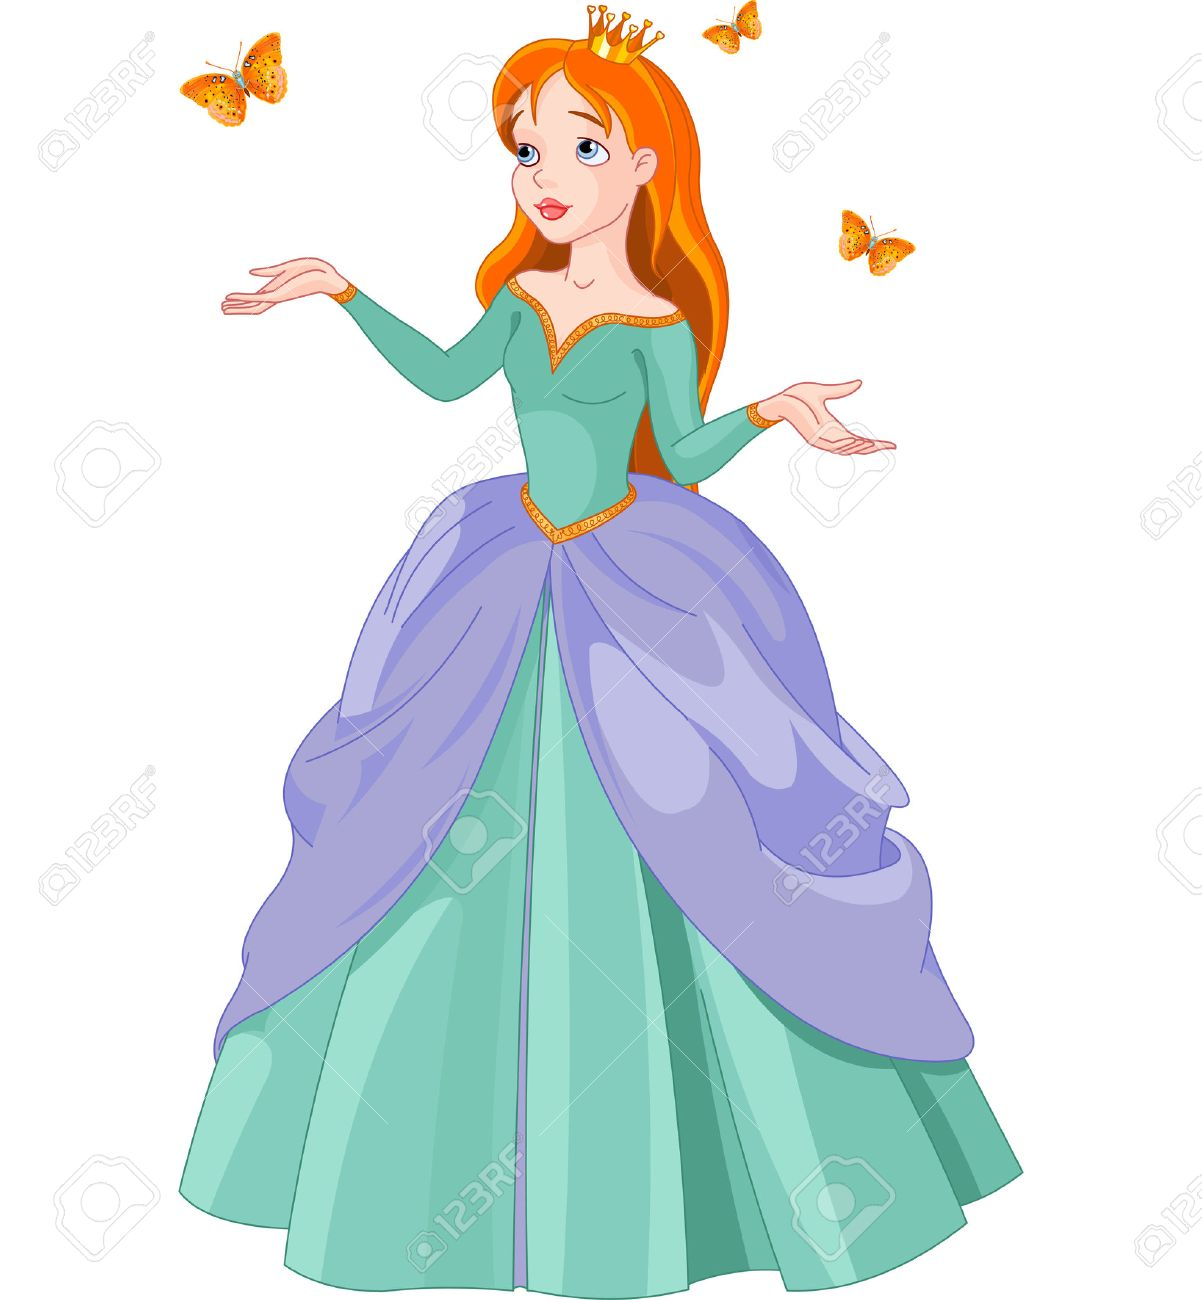 2,393 Princess Clipart Stock Illustrations, Cliparts And Royalty ...